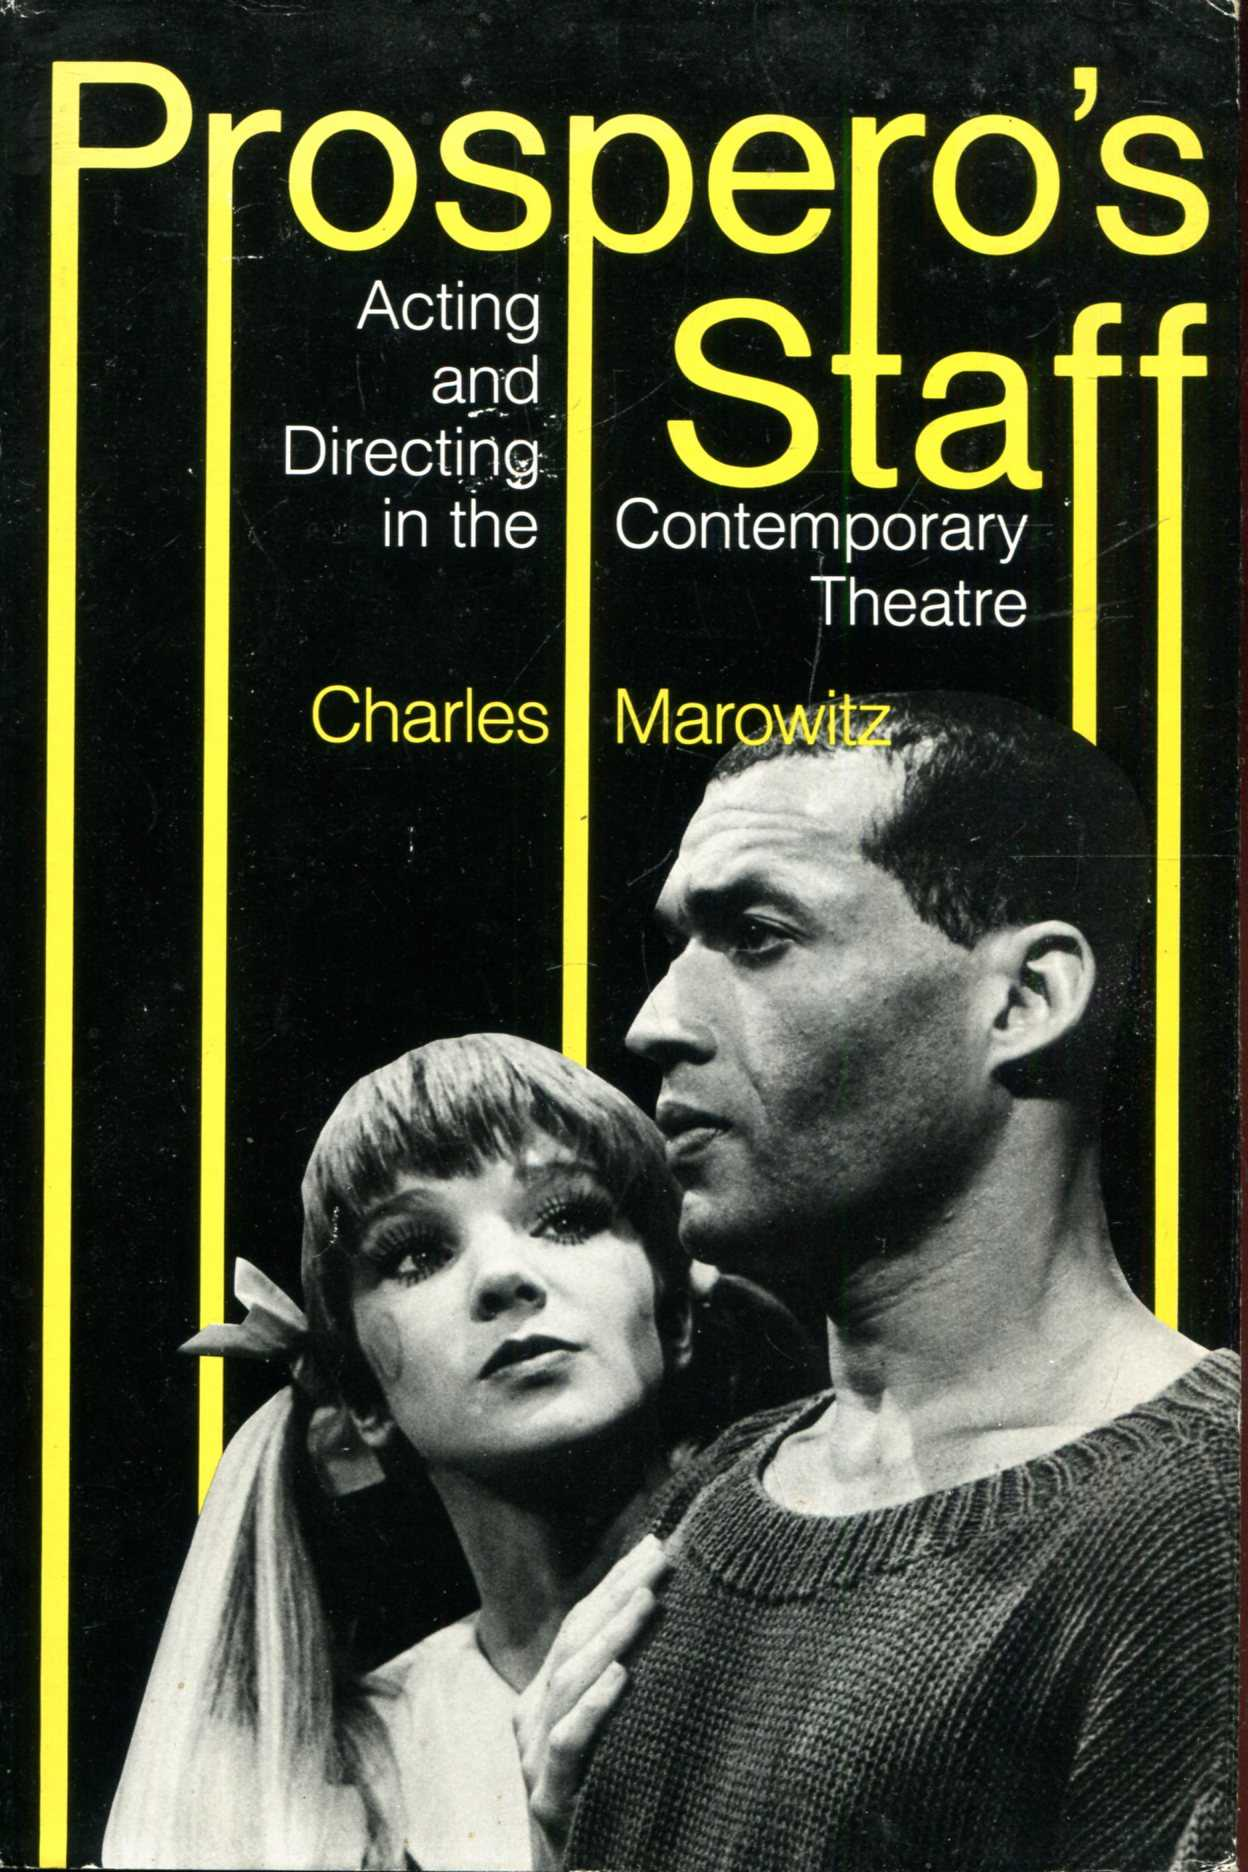 Image for Prospero's Staff: Acting and Directing in the Contemporary Theatre